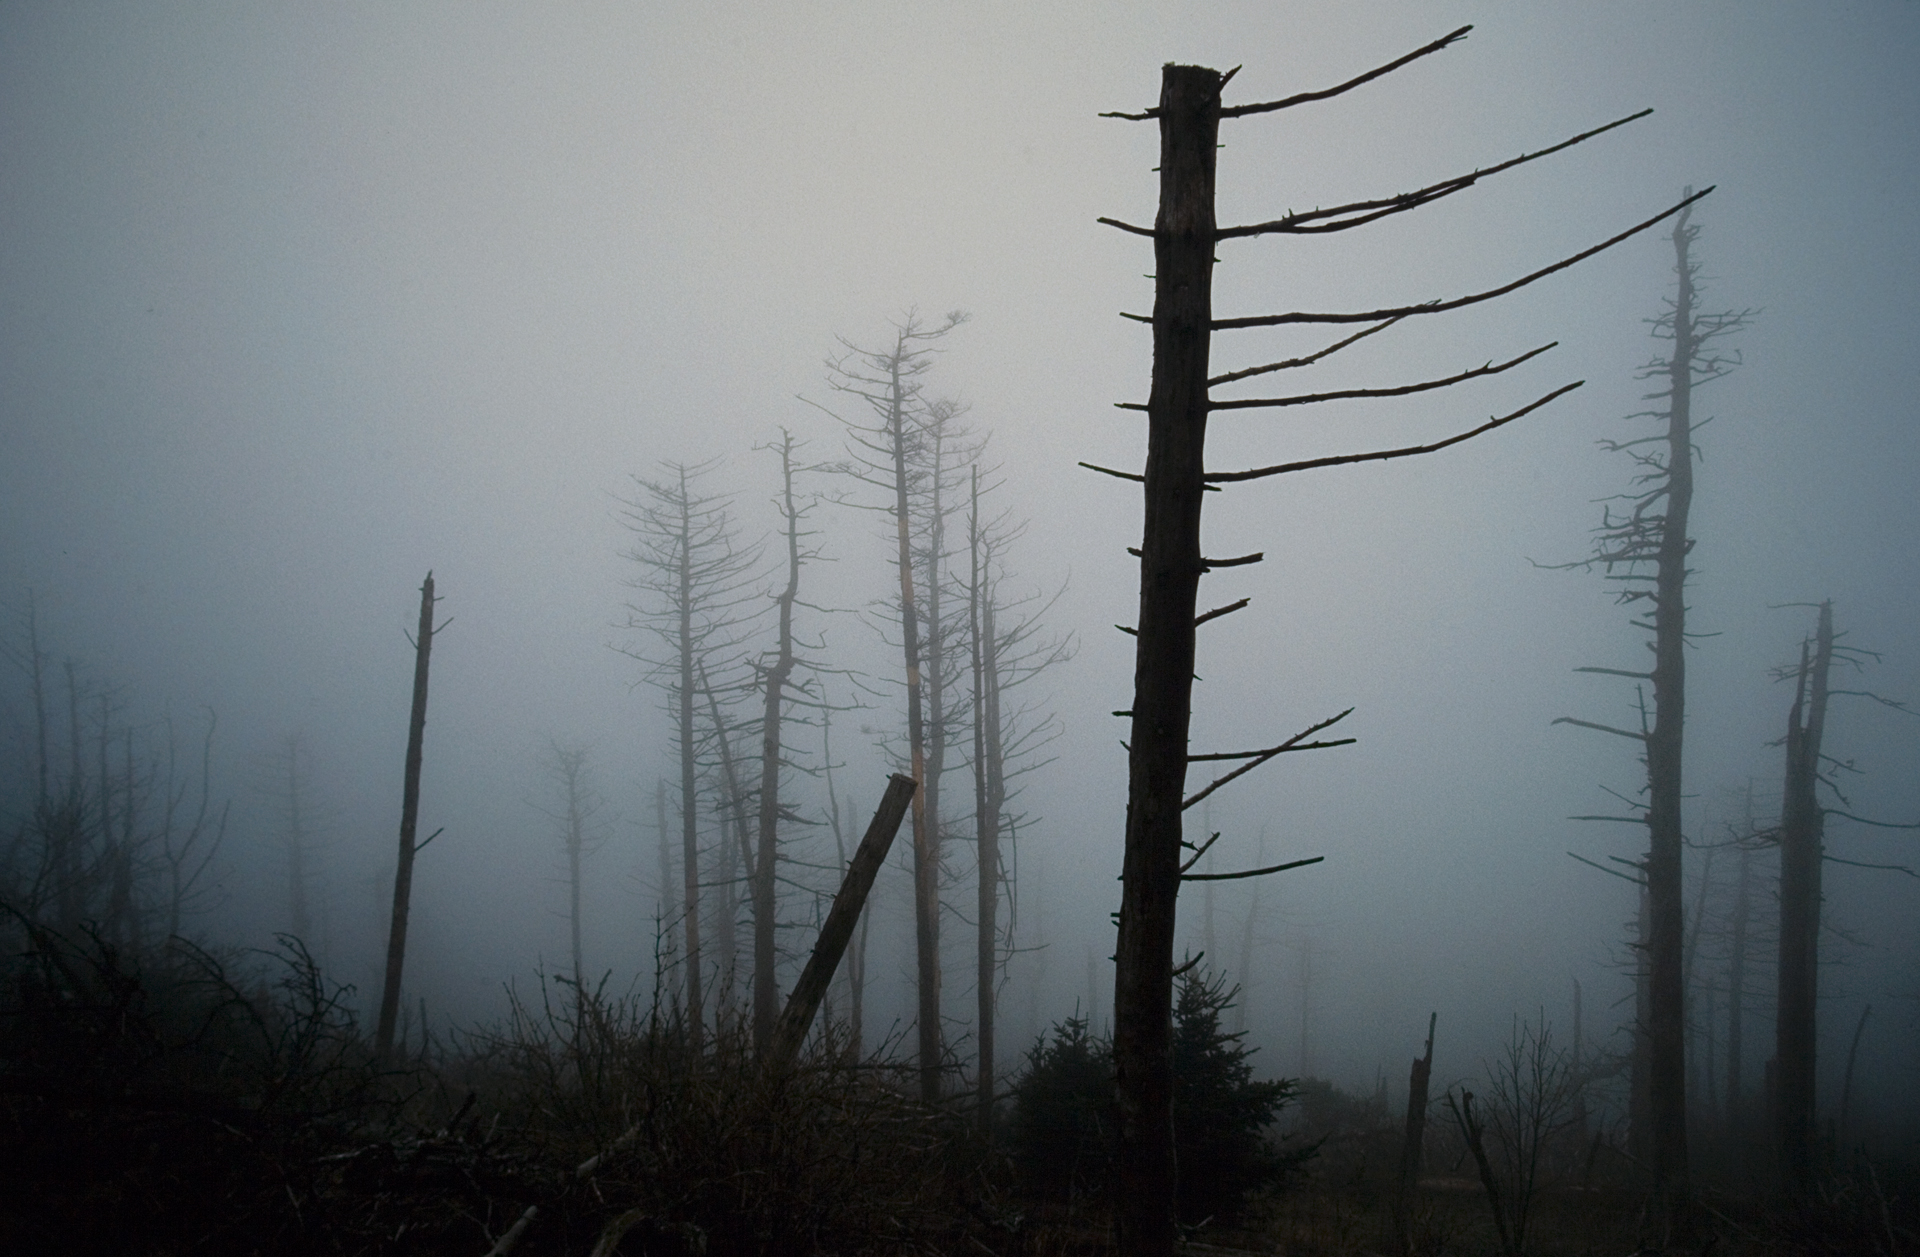 Dying Fraser Firs, a common result of aphid infestation due to air pollution.  Clingman's Dome, Tennessee